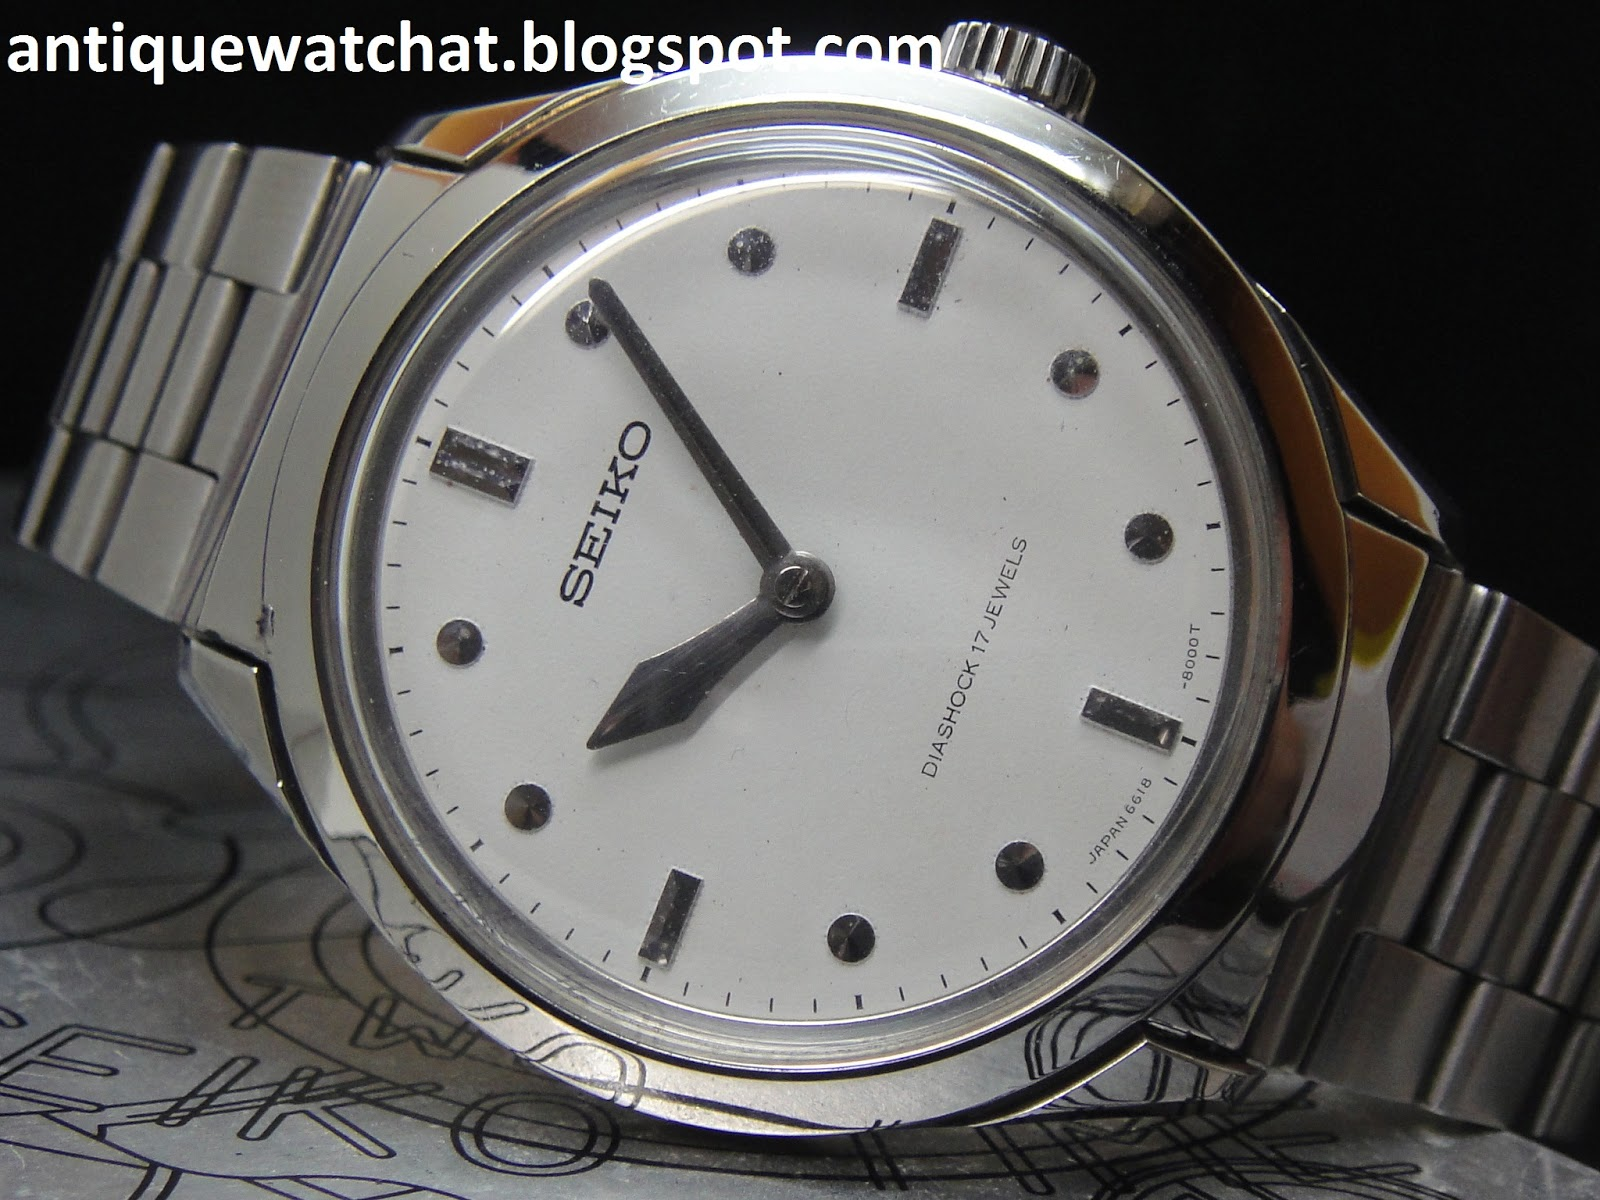 kickstarter in blog successful blinds blind launch men rec watches and a show for